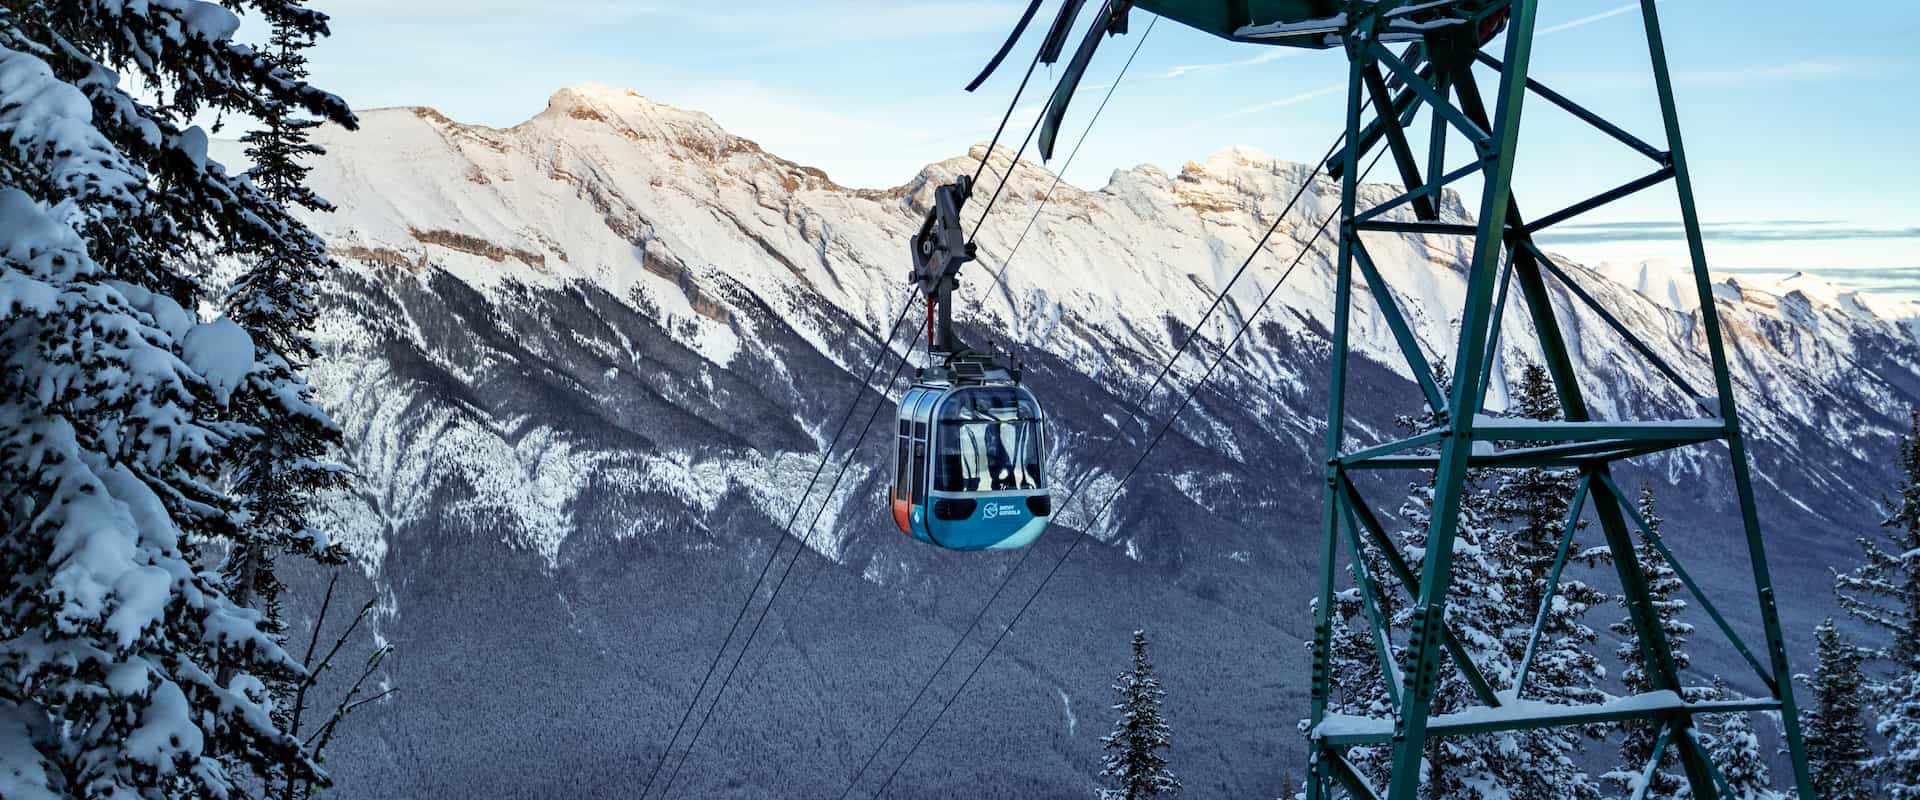 Winter Banff Gondola in Banff National Park